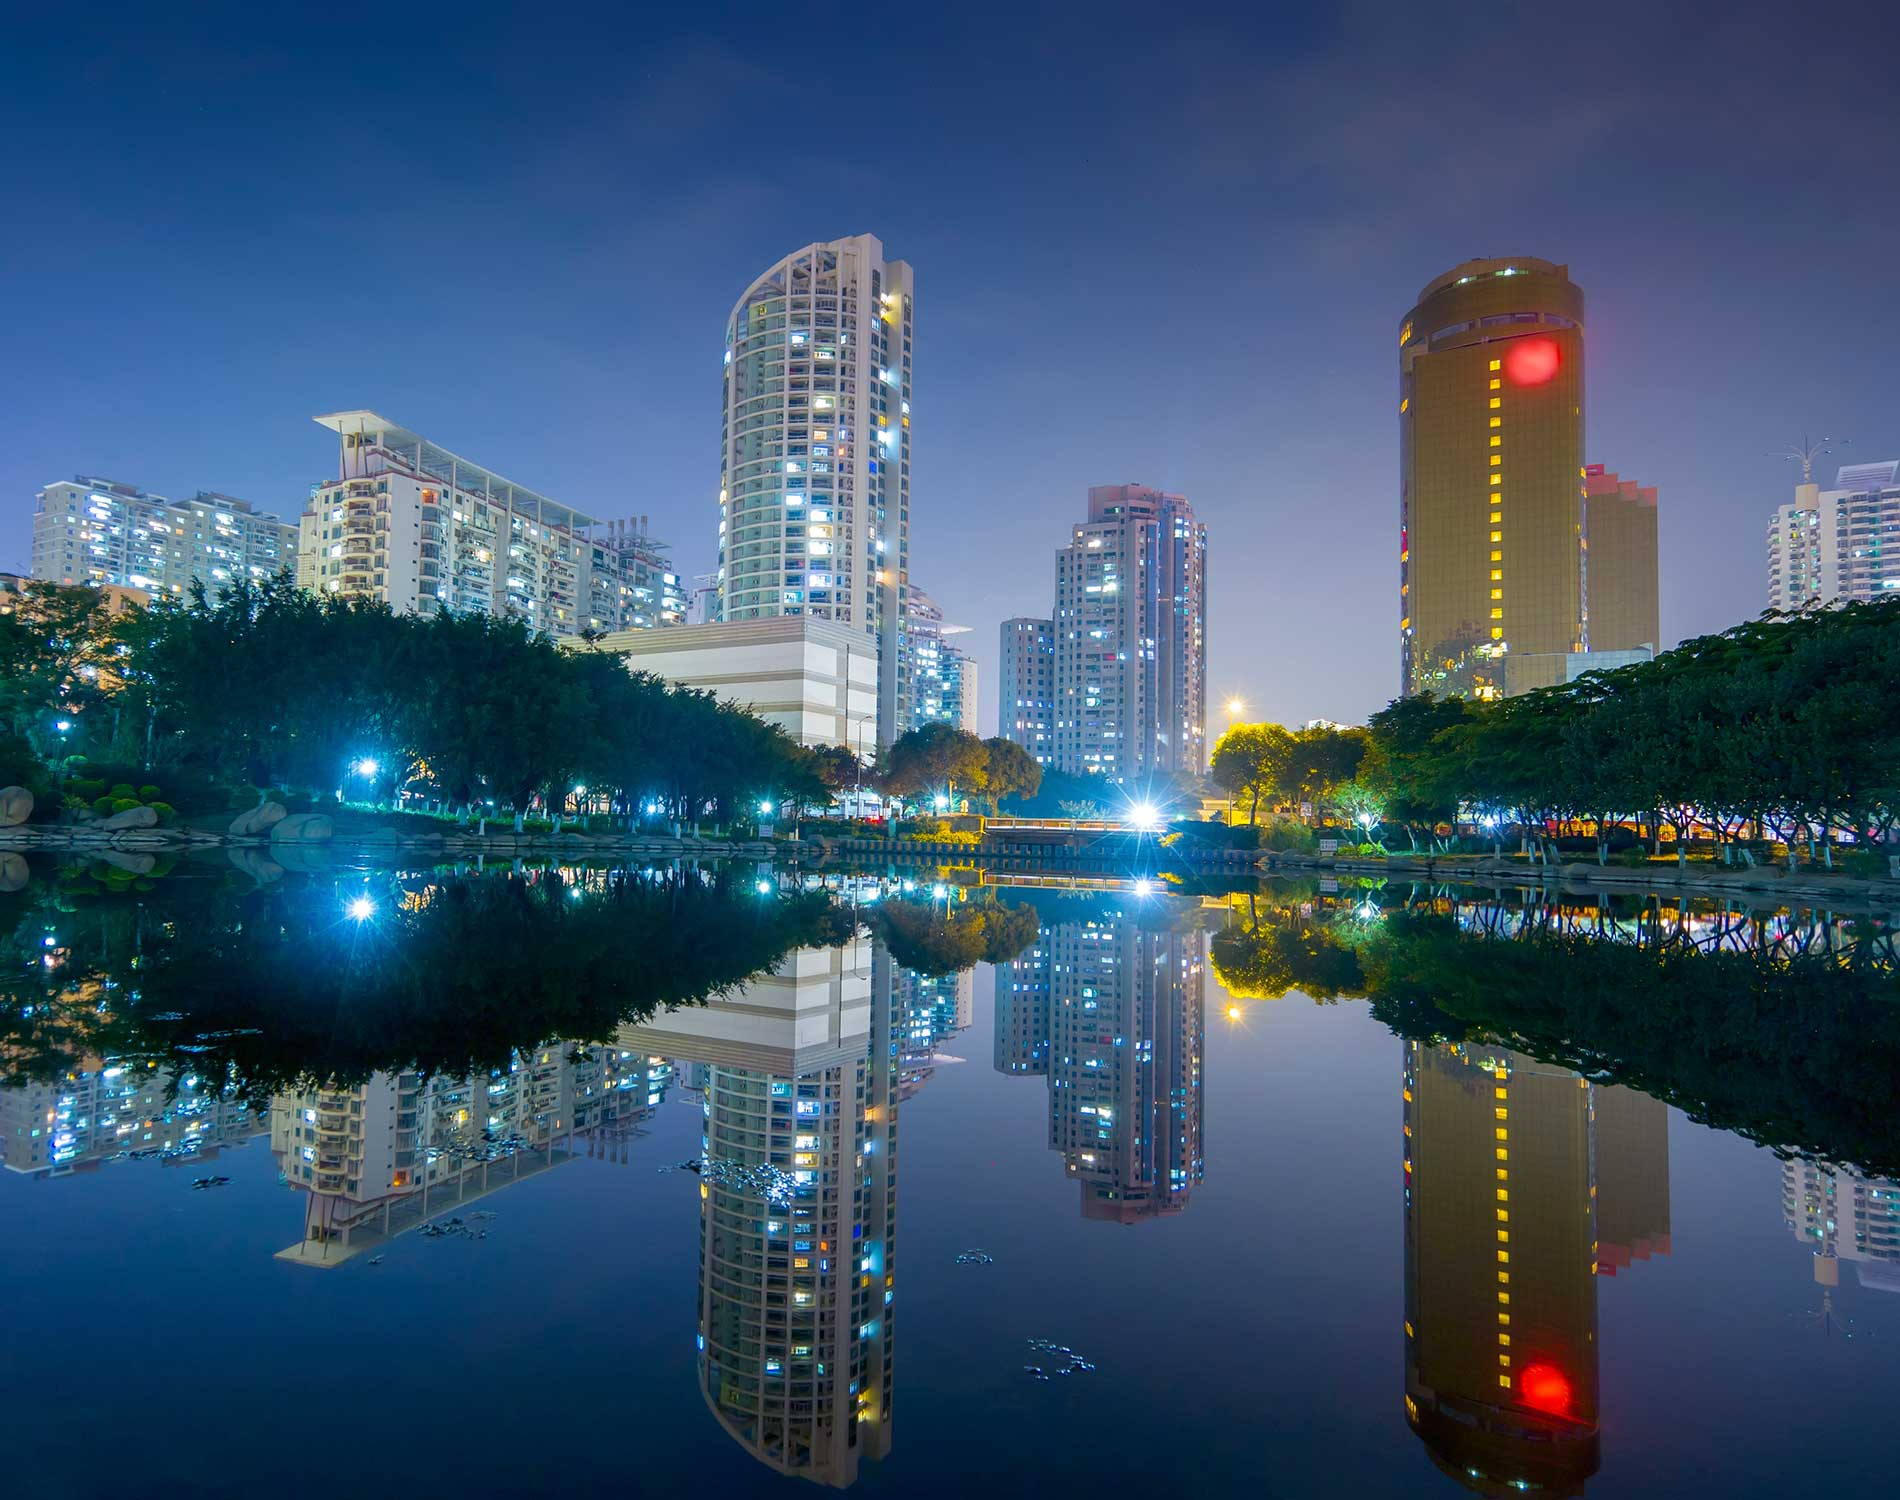 /-/media/images/website/background-images/offices/xiamen/xiamen_city_1900x1500px.ashx